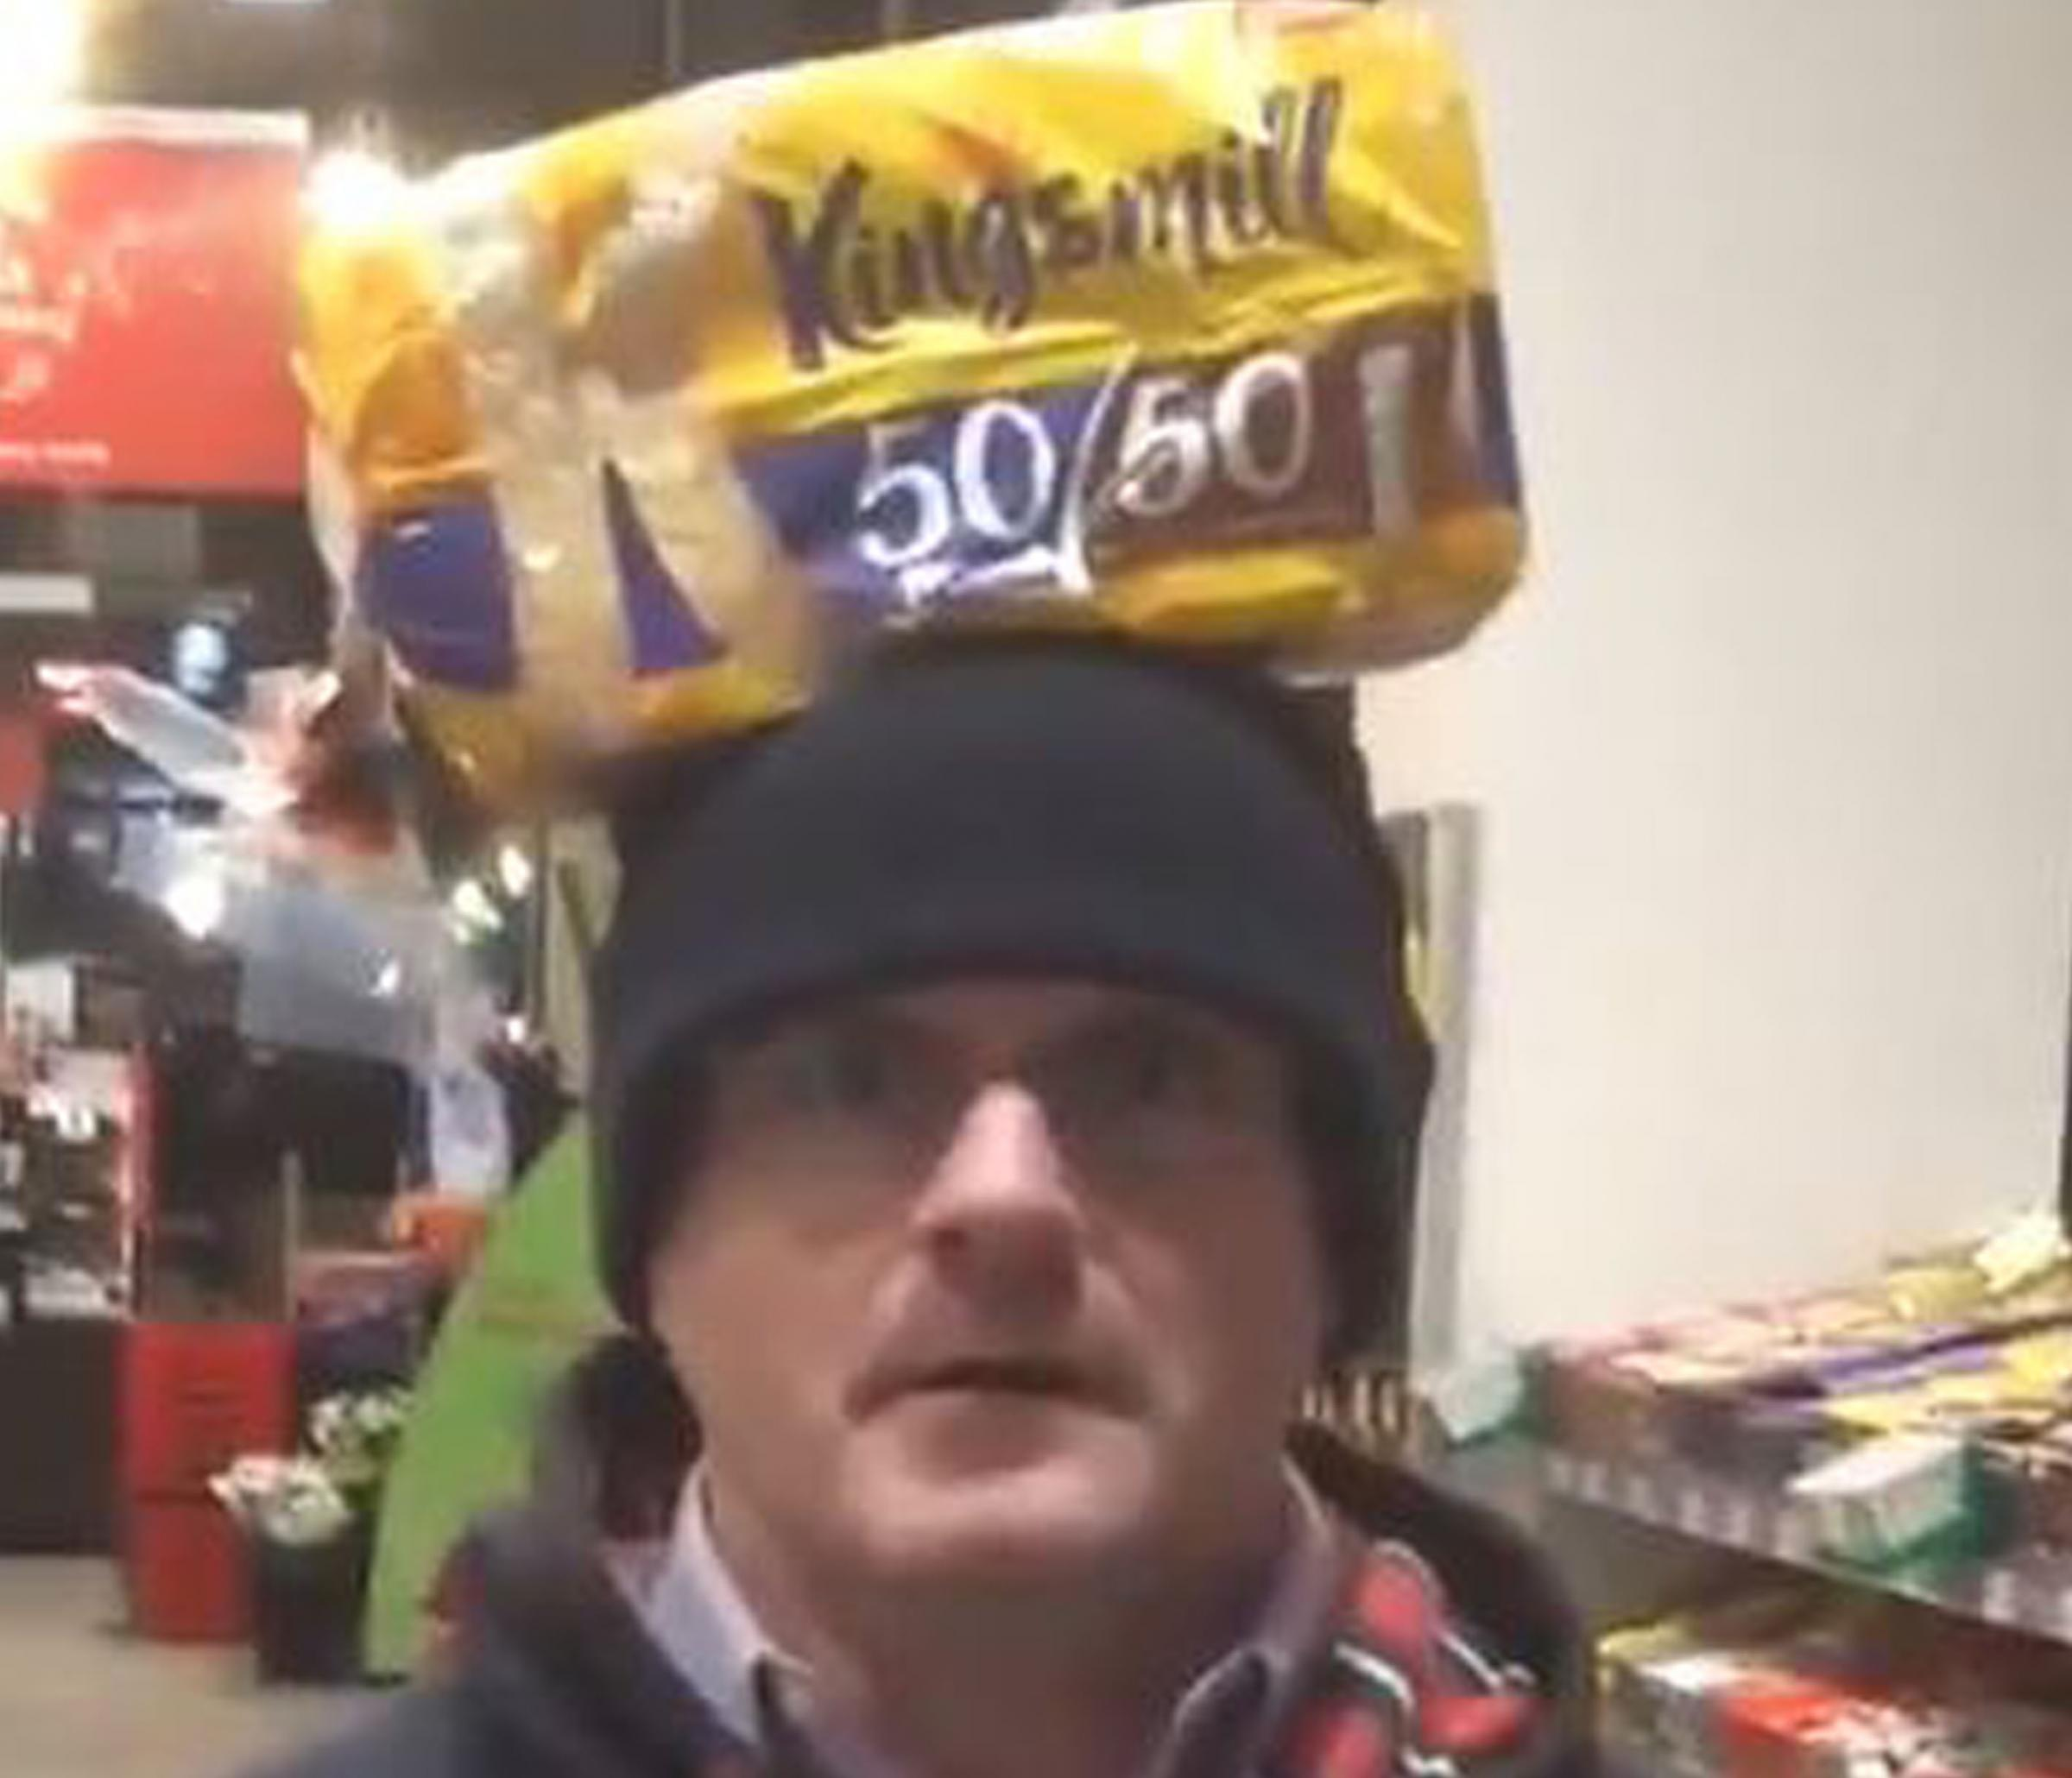 An image taken from the video Barry McElduff posted on his Twitter feed